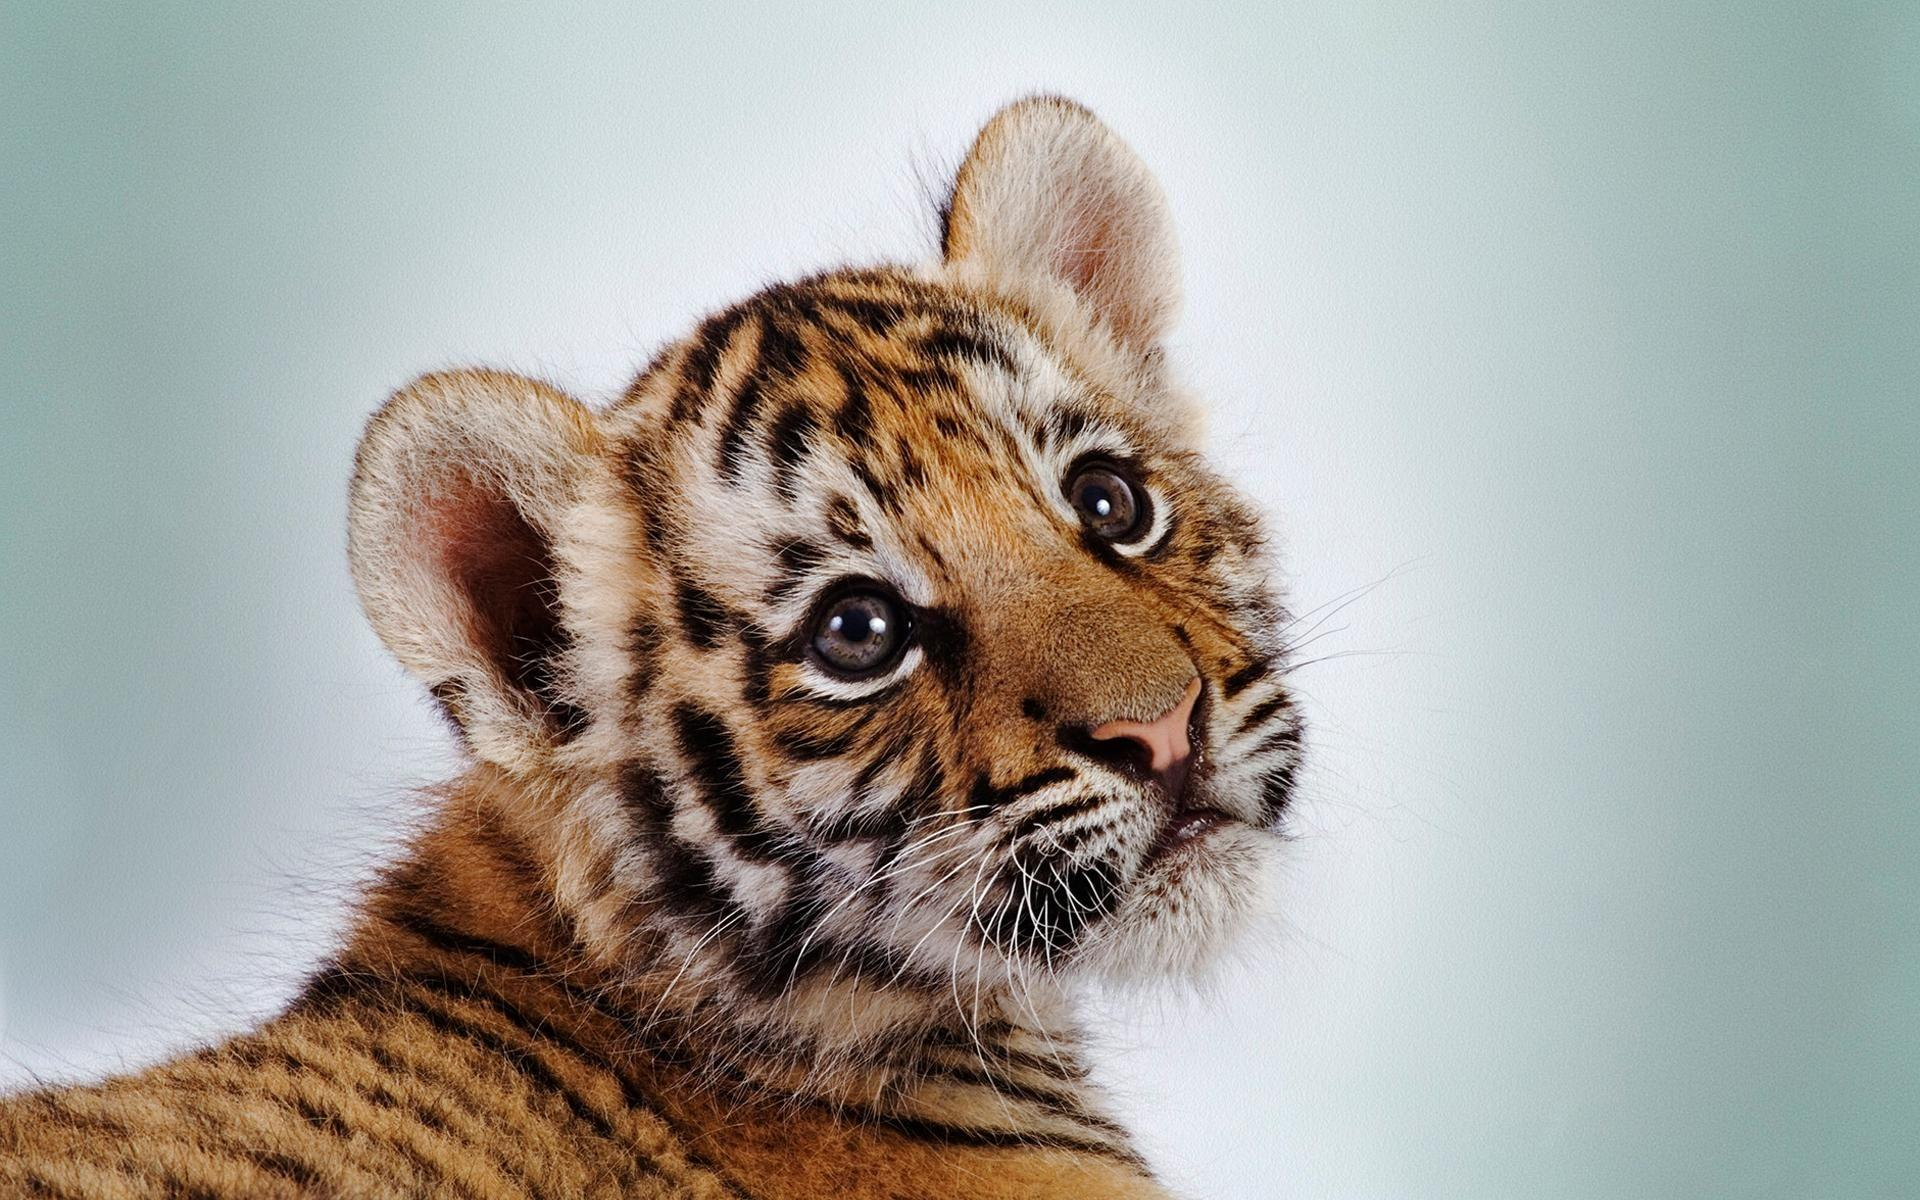 Baby tiger iphone wallpaper - photo#36